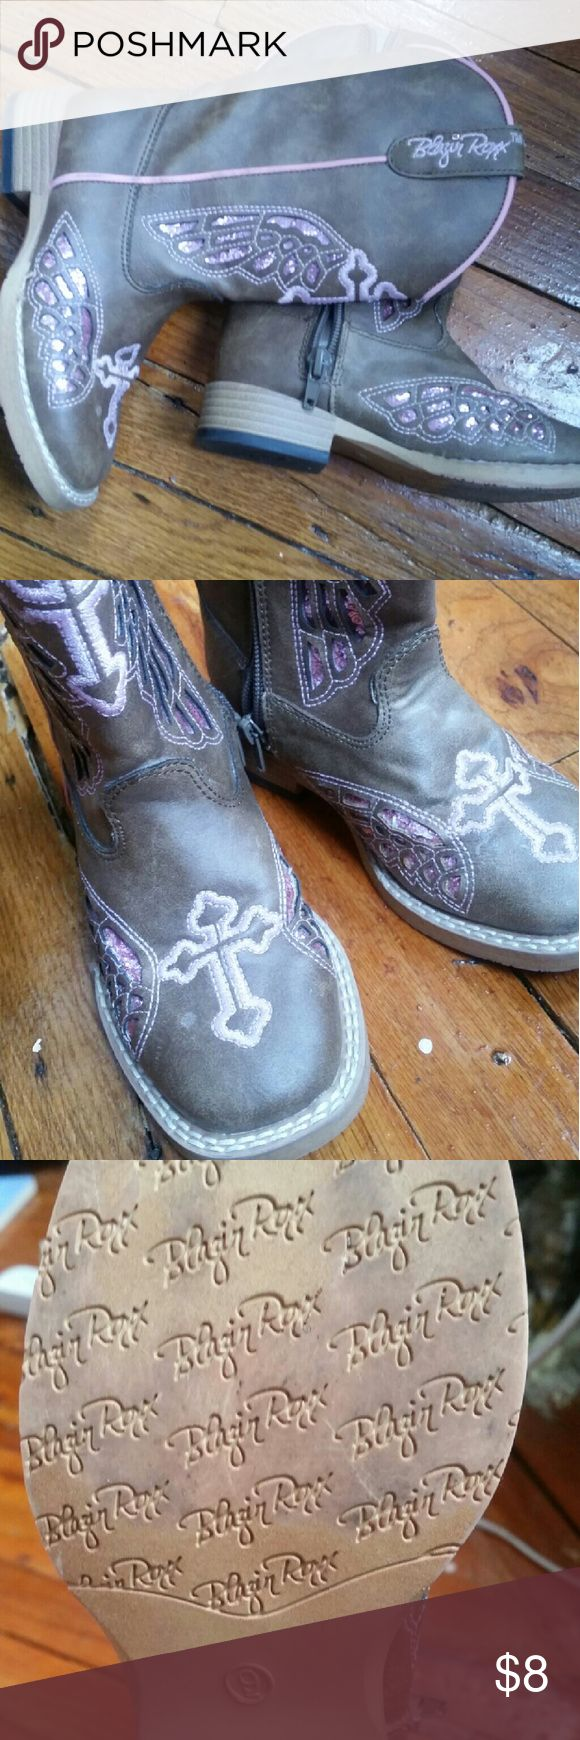 Toddler cowgirl boots for girls Fashionable girl boots, super cute! Shoes Boots